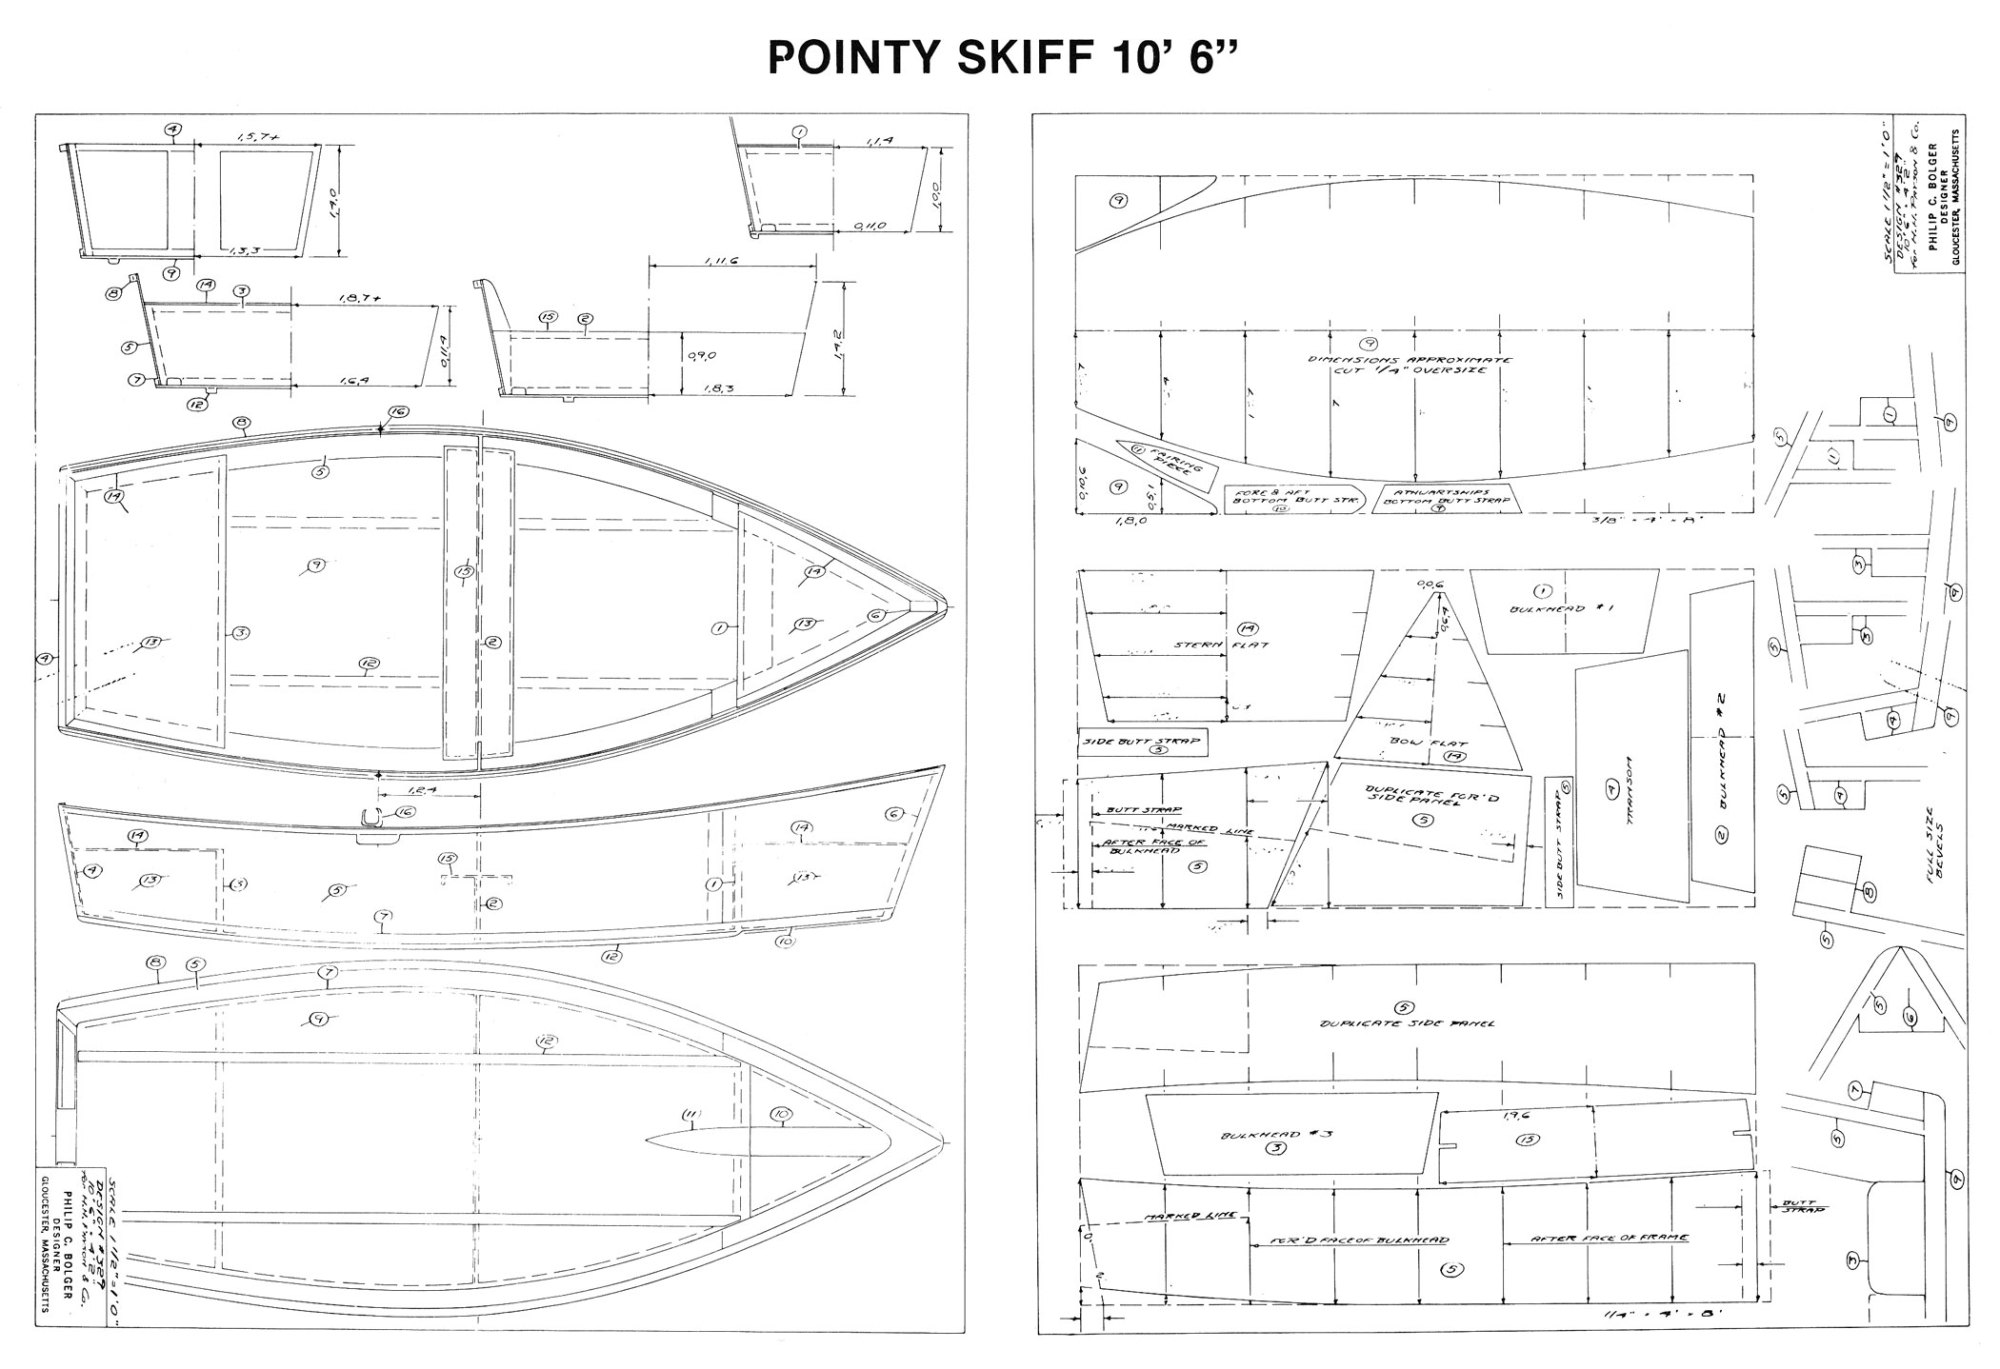 hight resolution of small row boat plans how to build diy pdf download uk australia